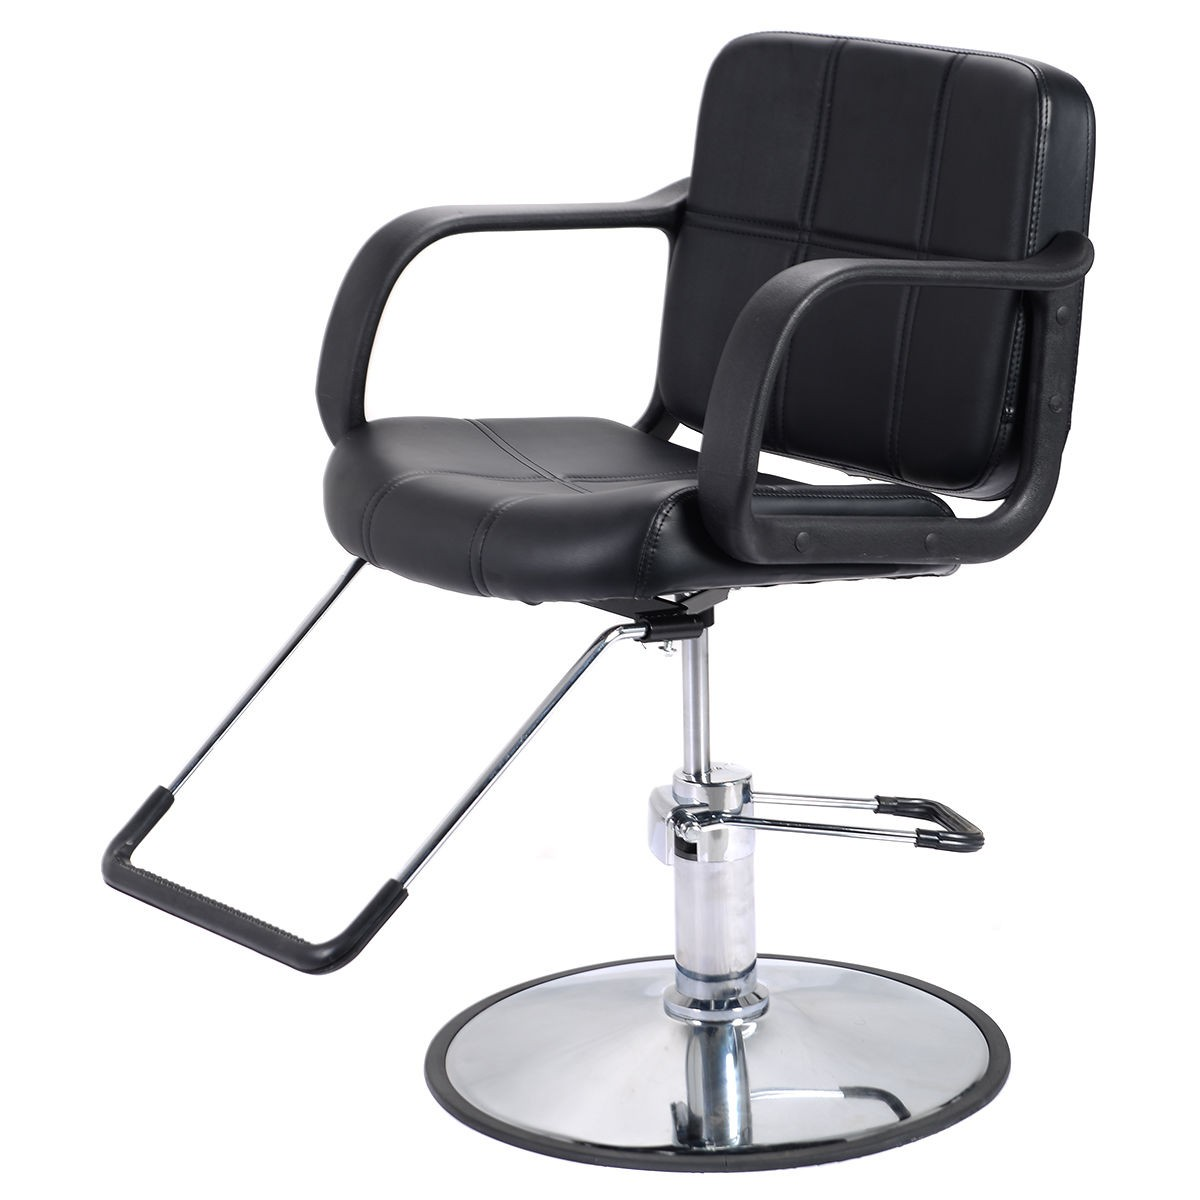 New Hydraulic Barber Chair Salon Beauty Spa Hair Styling Equipment Black EBay